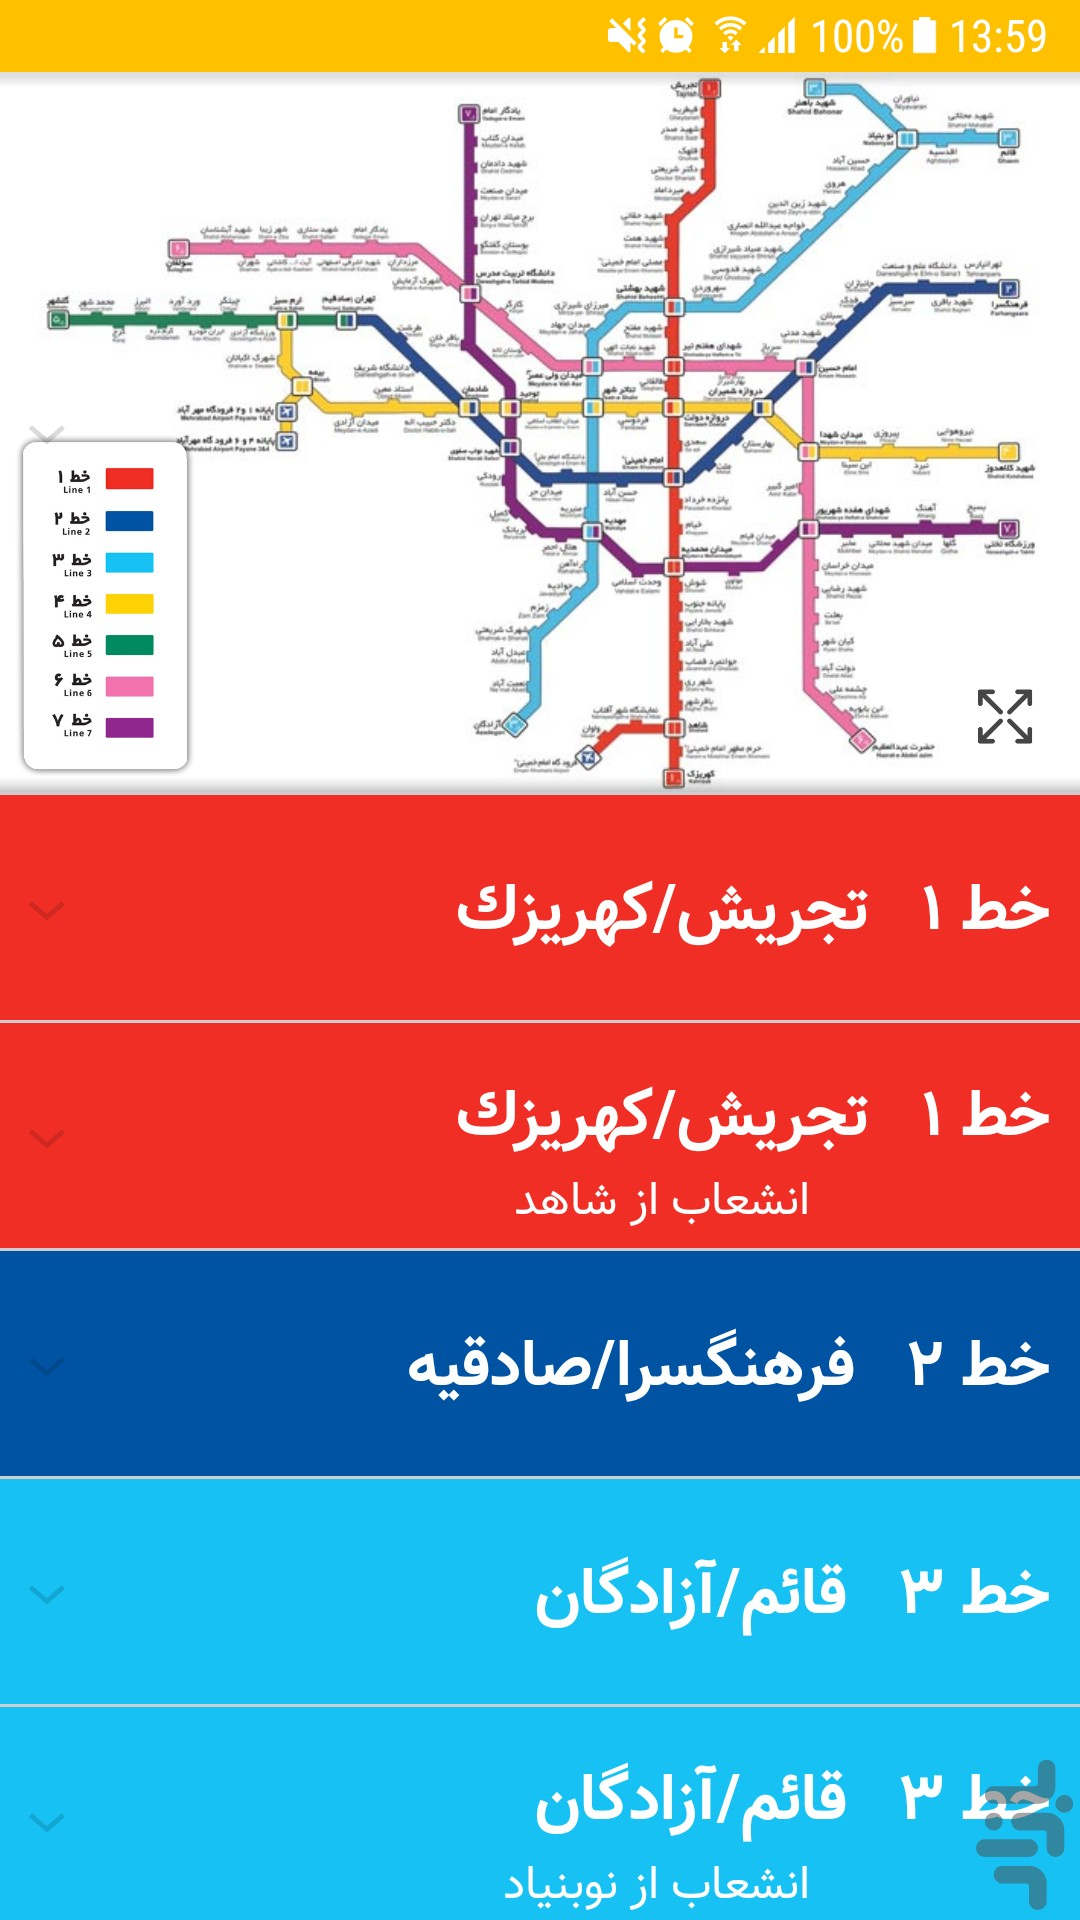 Tehran Subway Map.Tehran Metro Map For Android Download Cafe Bazaar